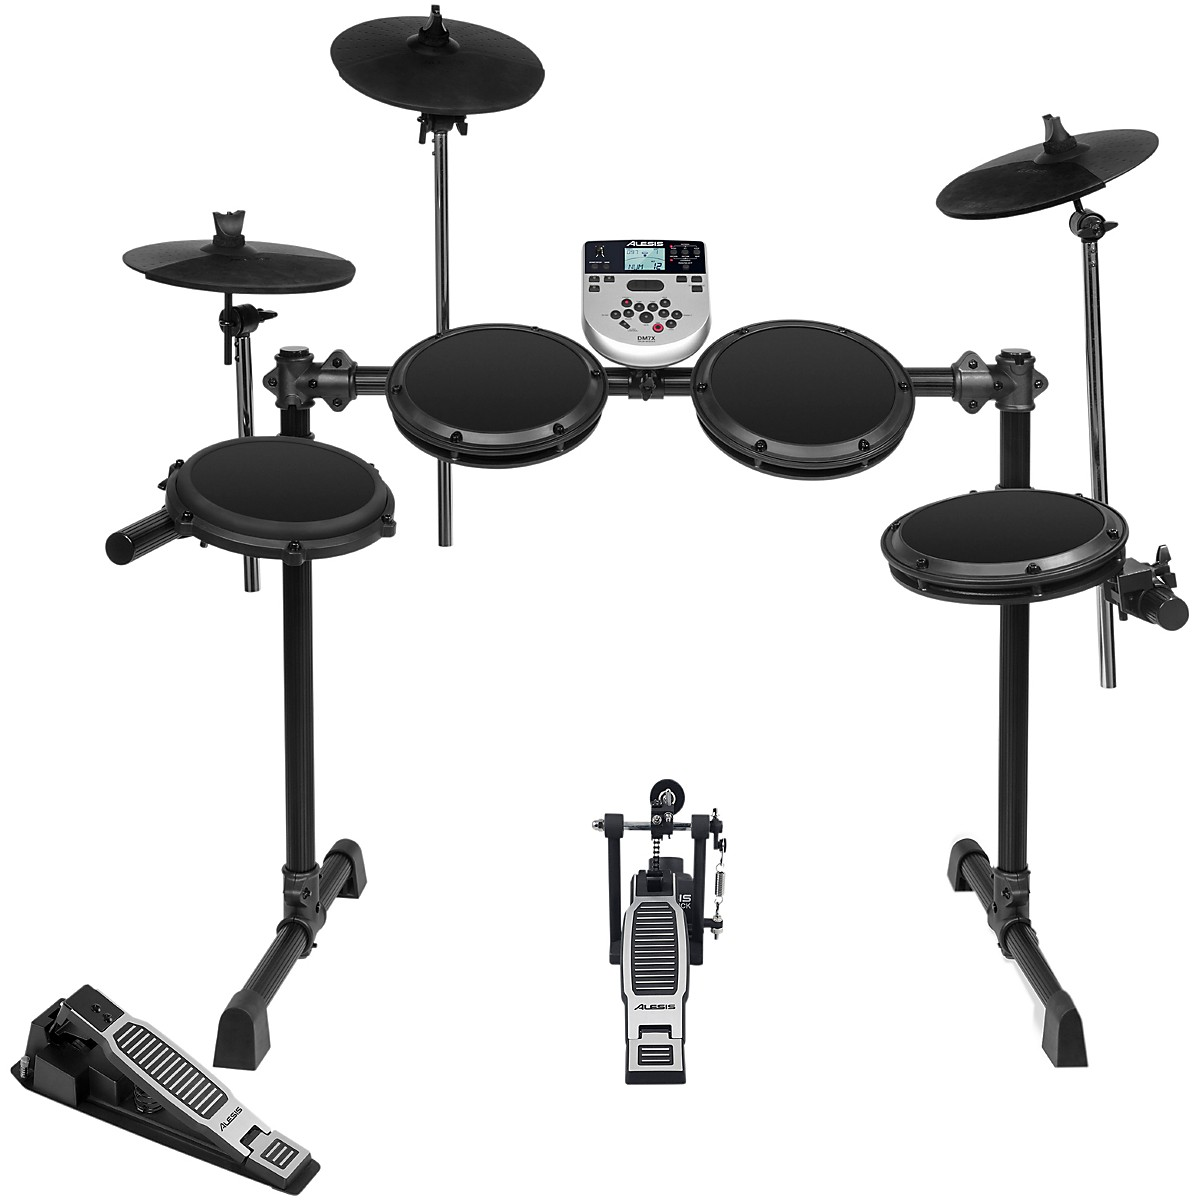 Alesis Stealthkick bass Drum Trigger **REPAIR SERVICE ONLY INCLUDES RETURN SHIP